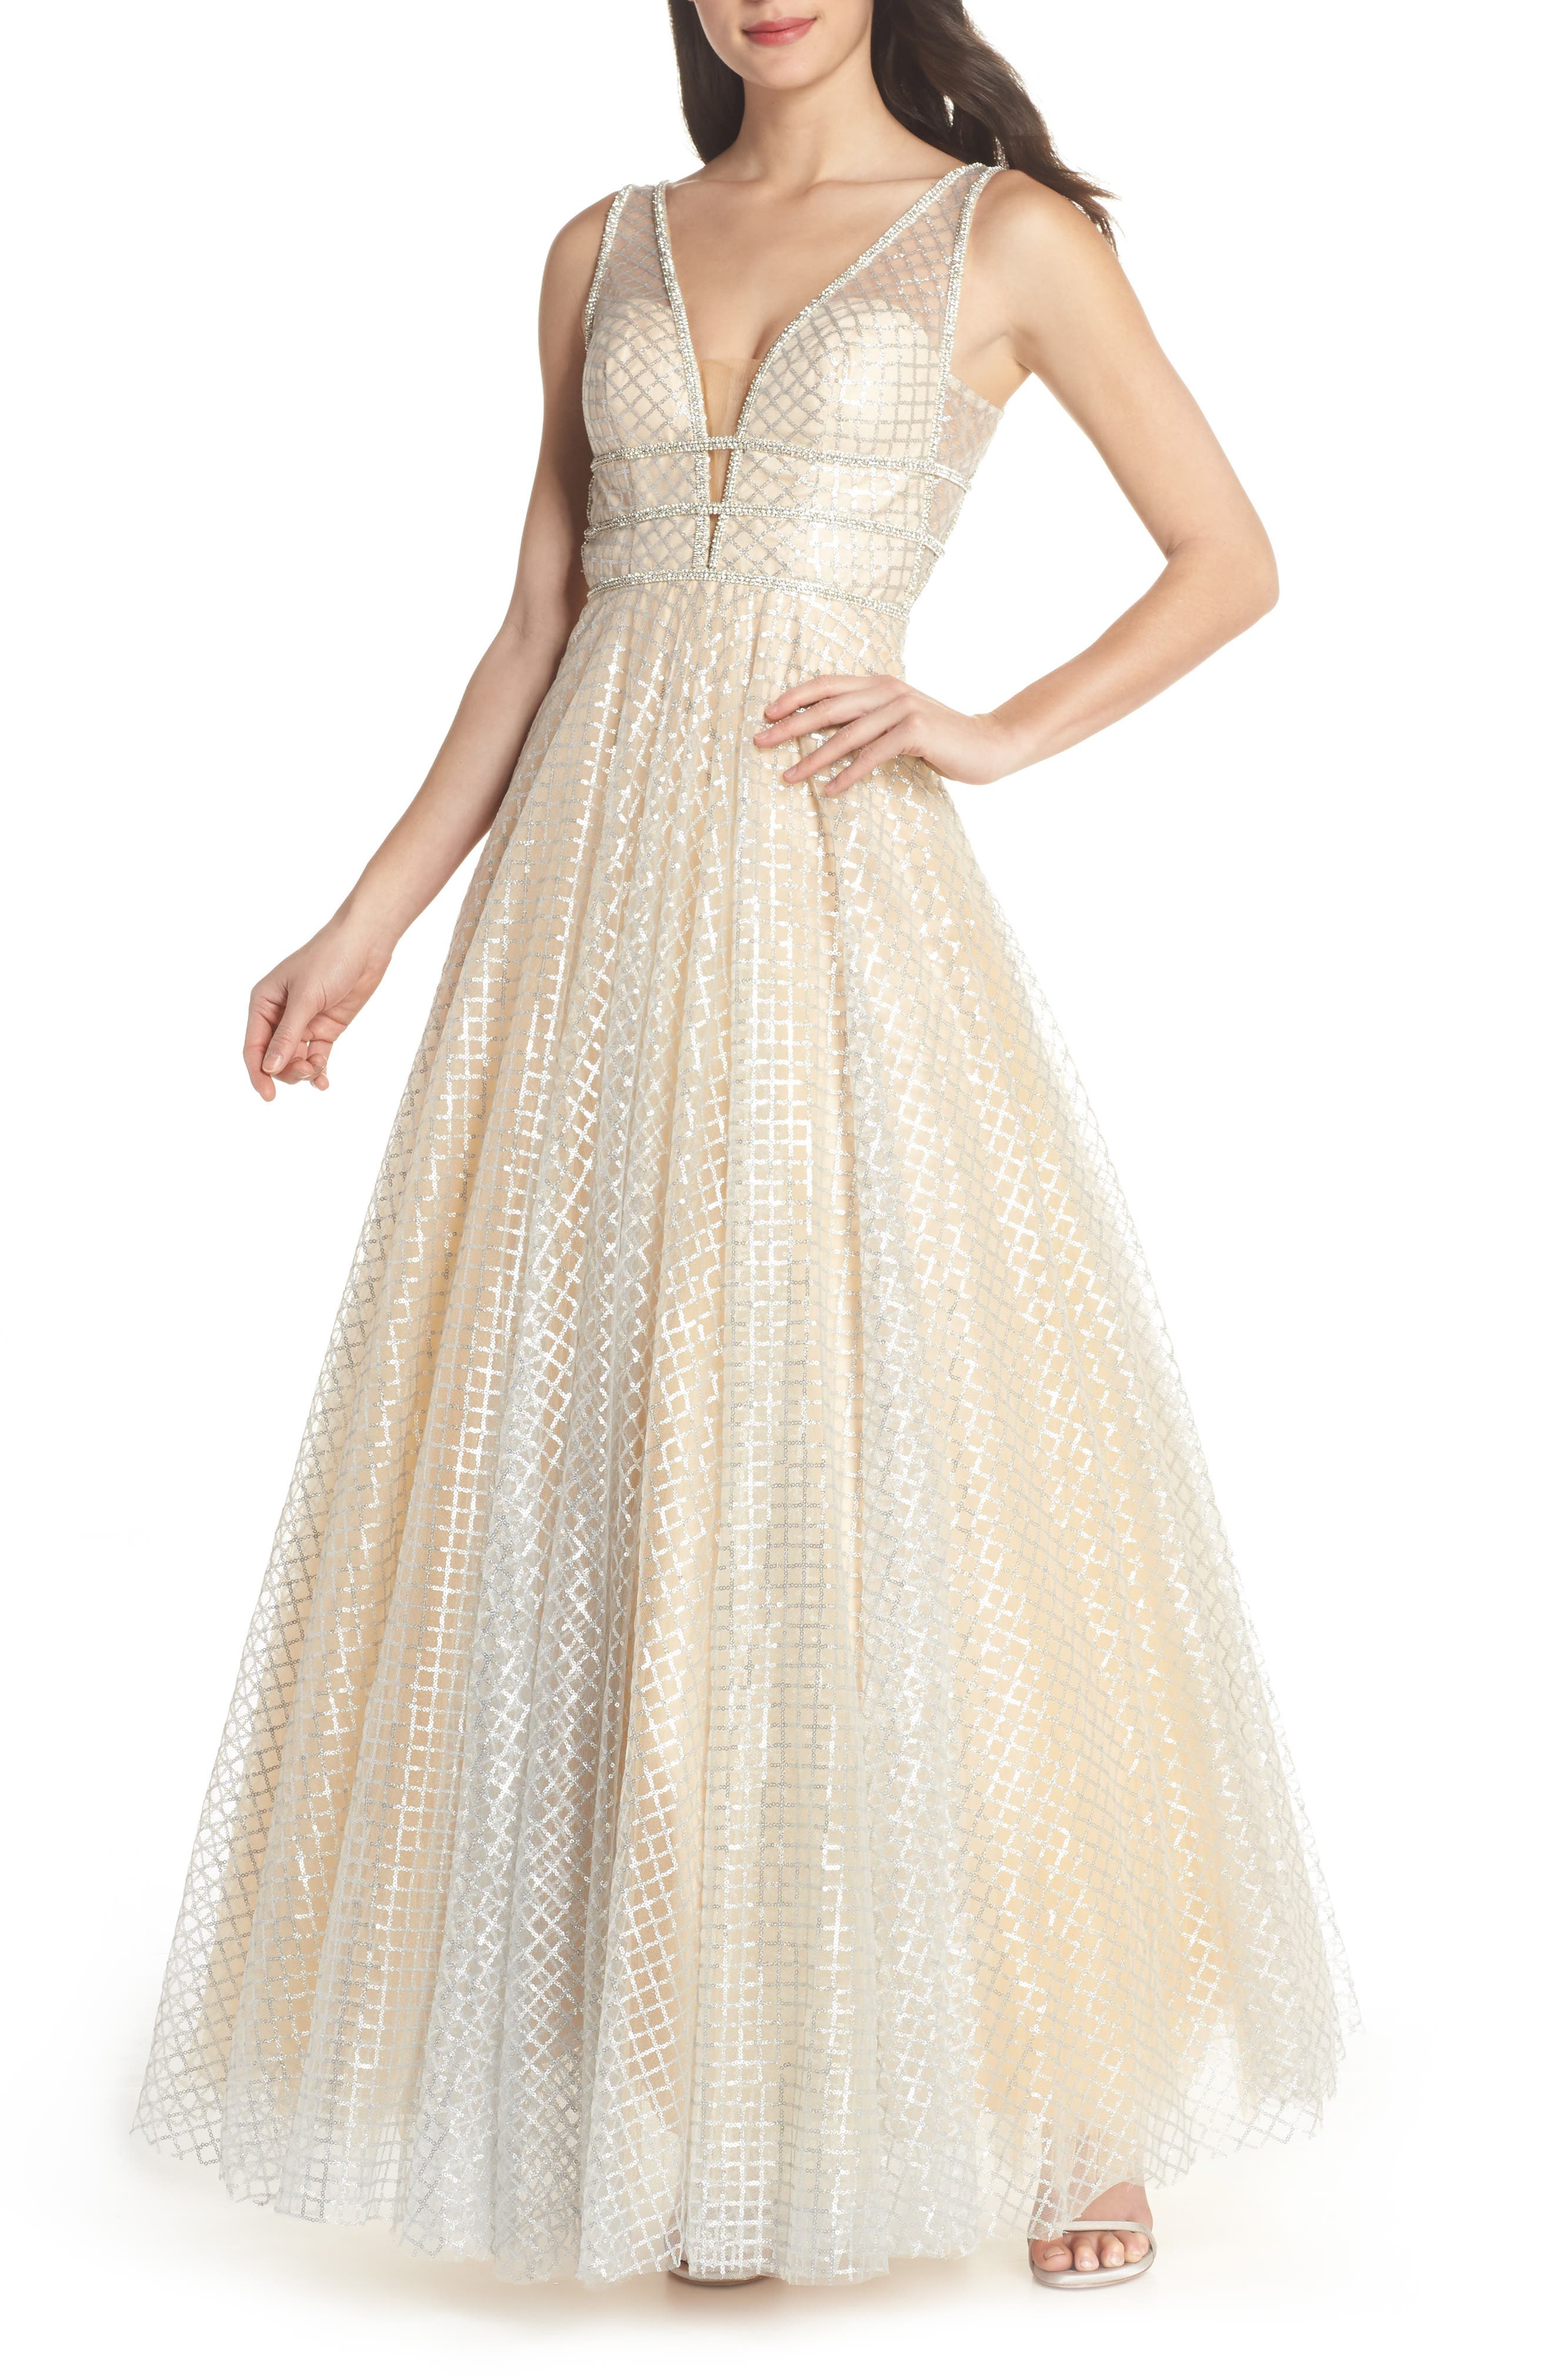 Sequin Illusion Neck Gown,                             Main thumbnail 1, color,                             Nude/ Silver